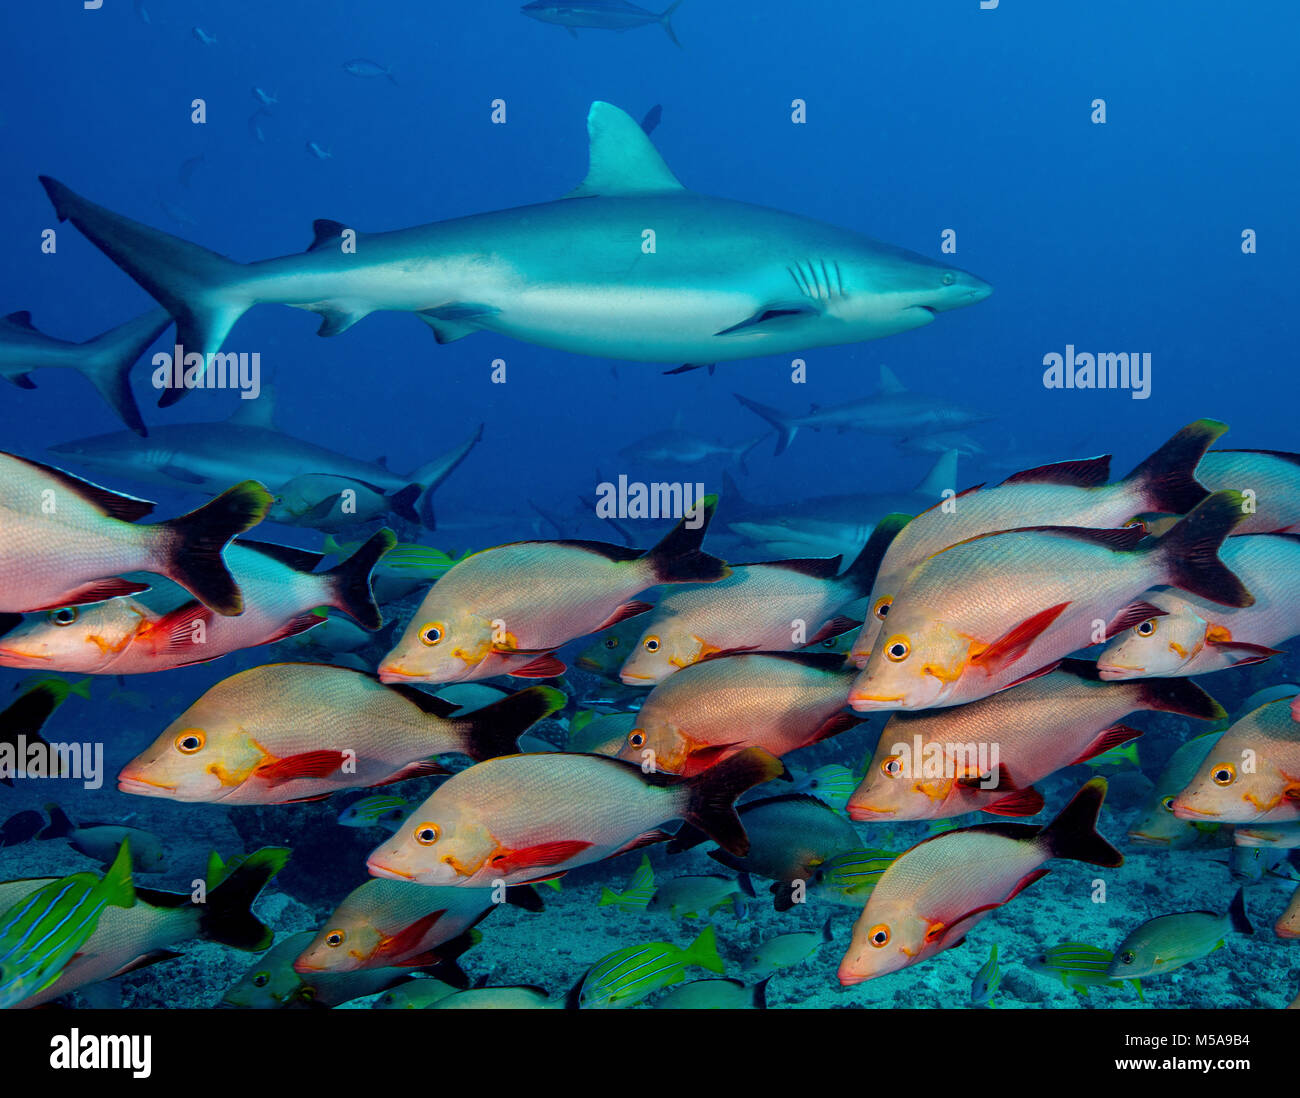 Marine life, fish in the waters of the South Pacific. A grey reef shark among a humpback red snapper shoal. - Stock Image